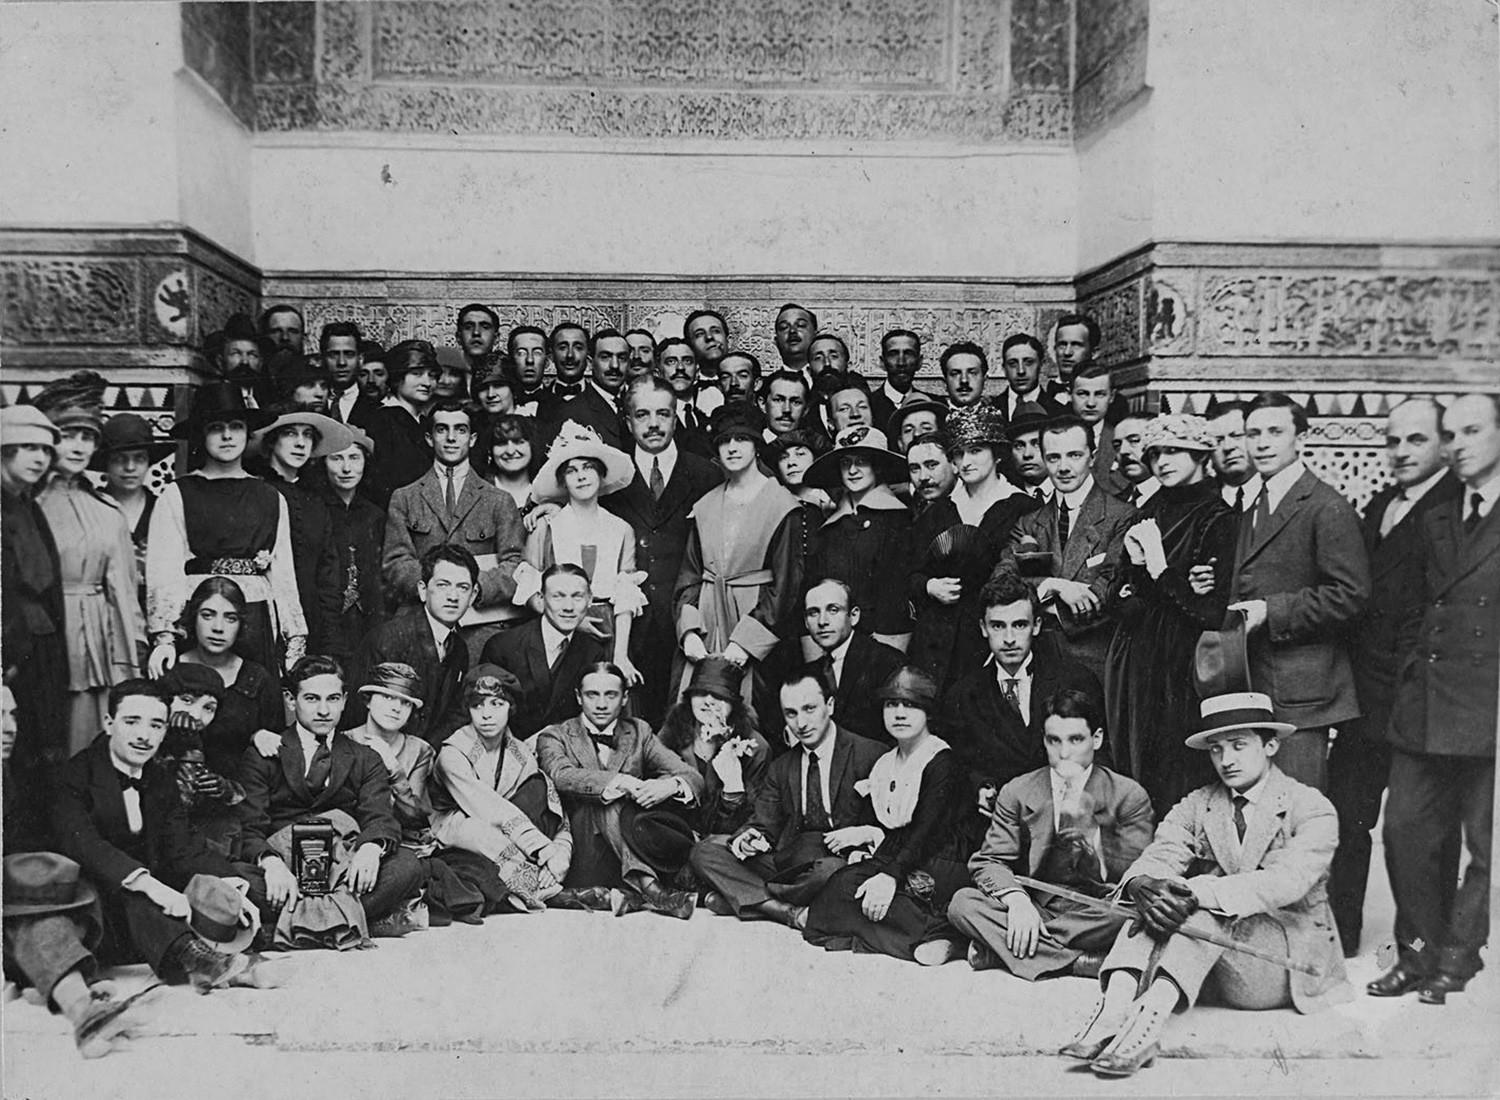 Ballets Russes in Seville, 1916. Sergei Diaghilev (center)